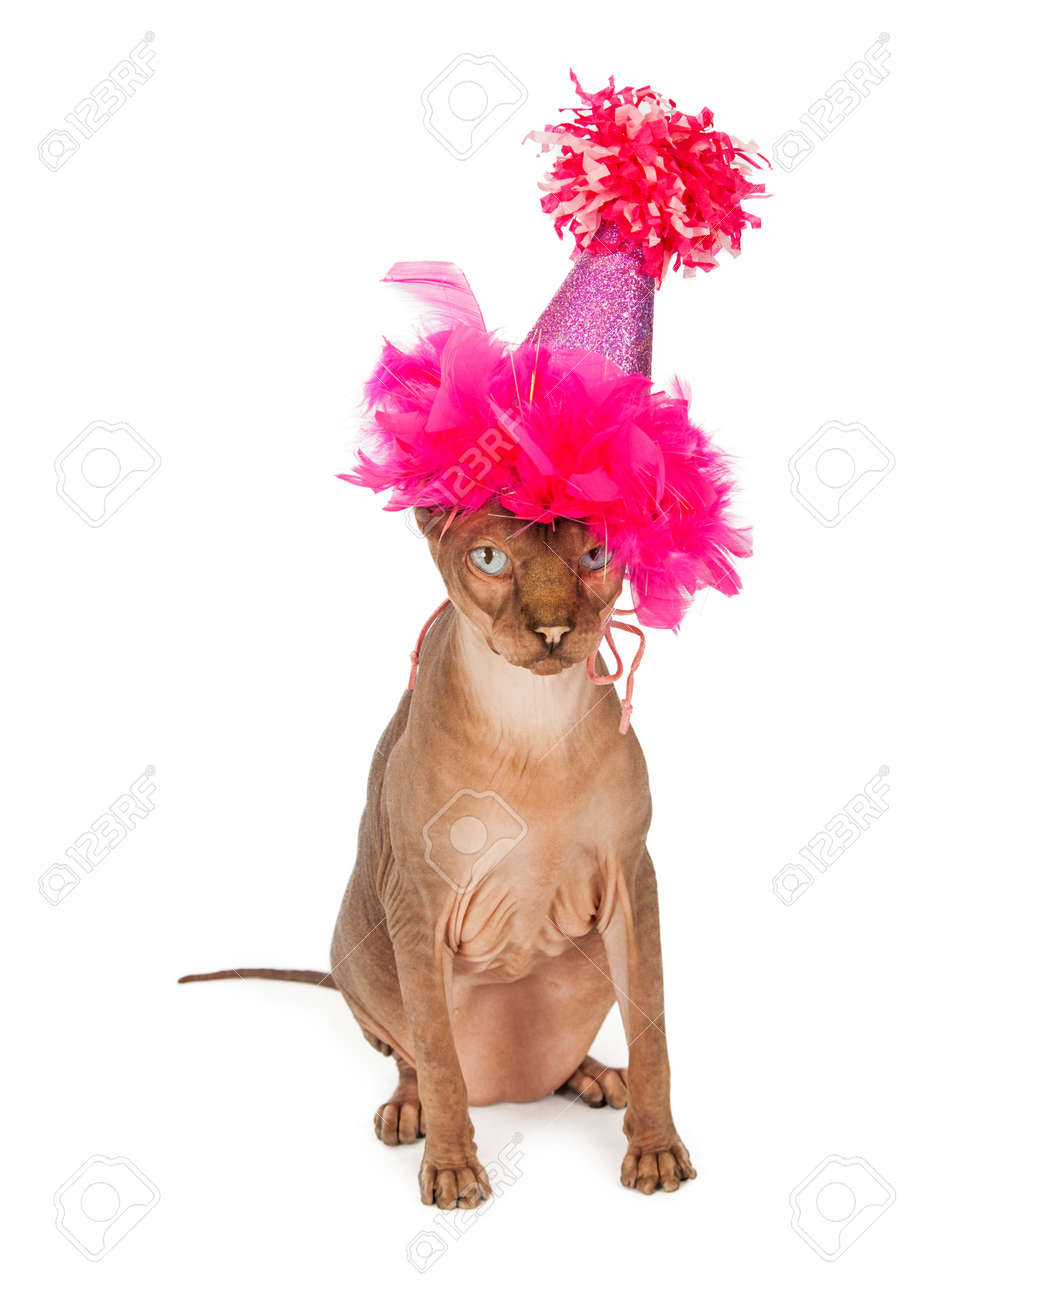 Funny Picture Of A Hairless Sphinx Breed Cat Wearing Fancy Pink Birthday Party Hat Stock